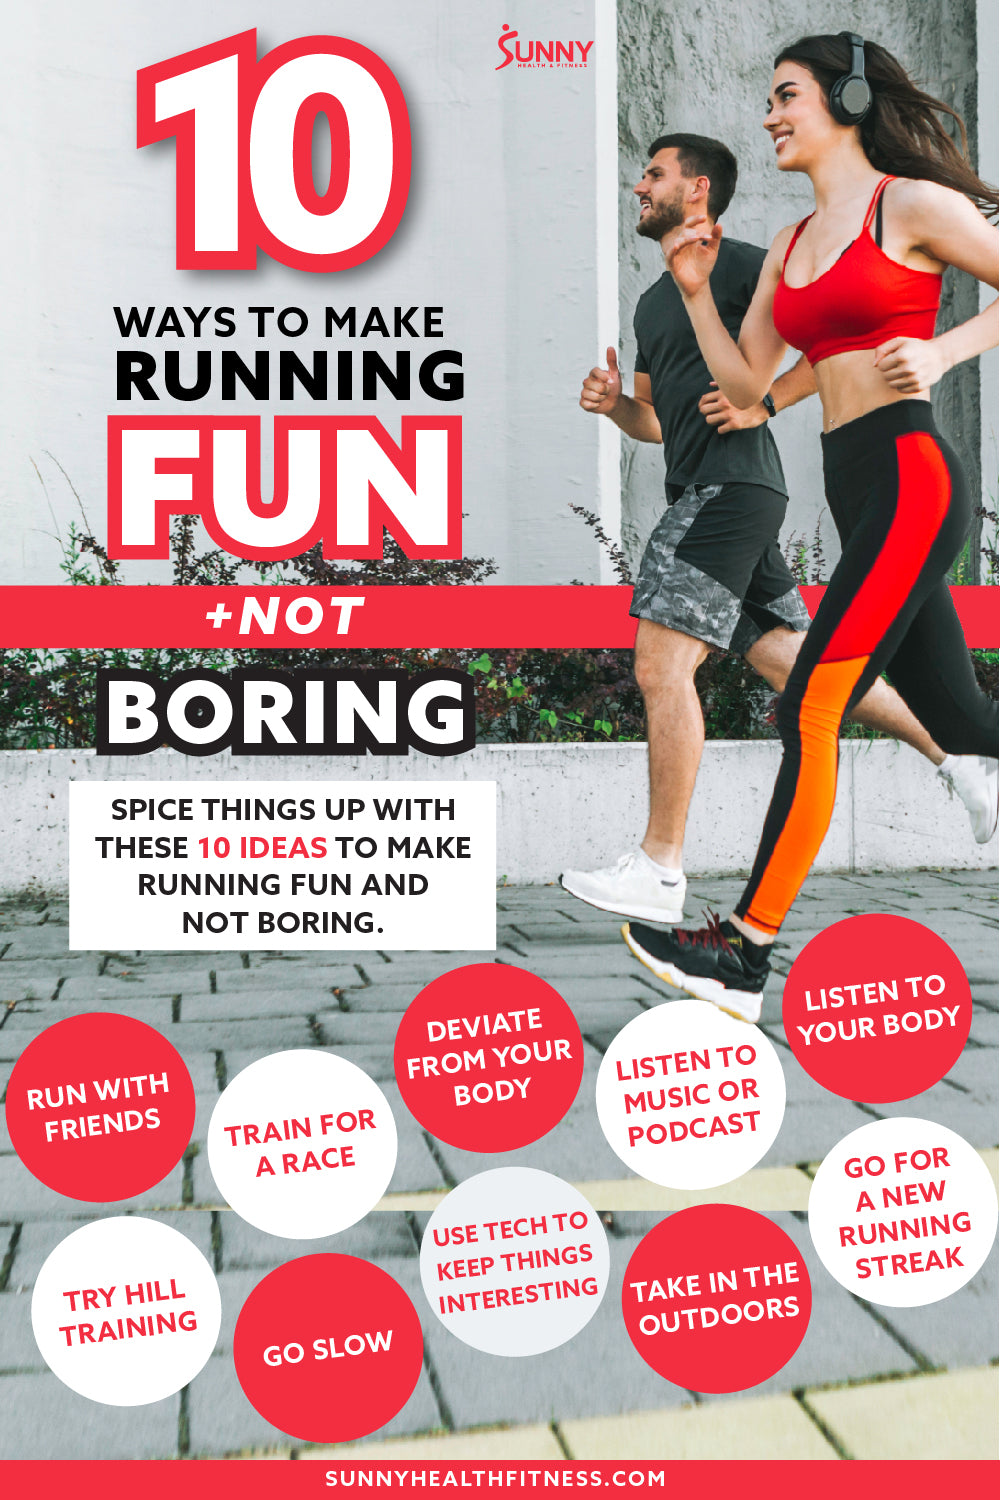 10 Tips for How to Have Fun Running Sessions